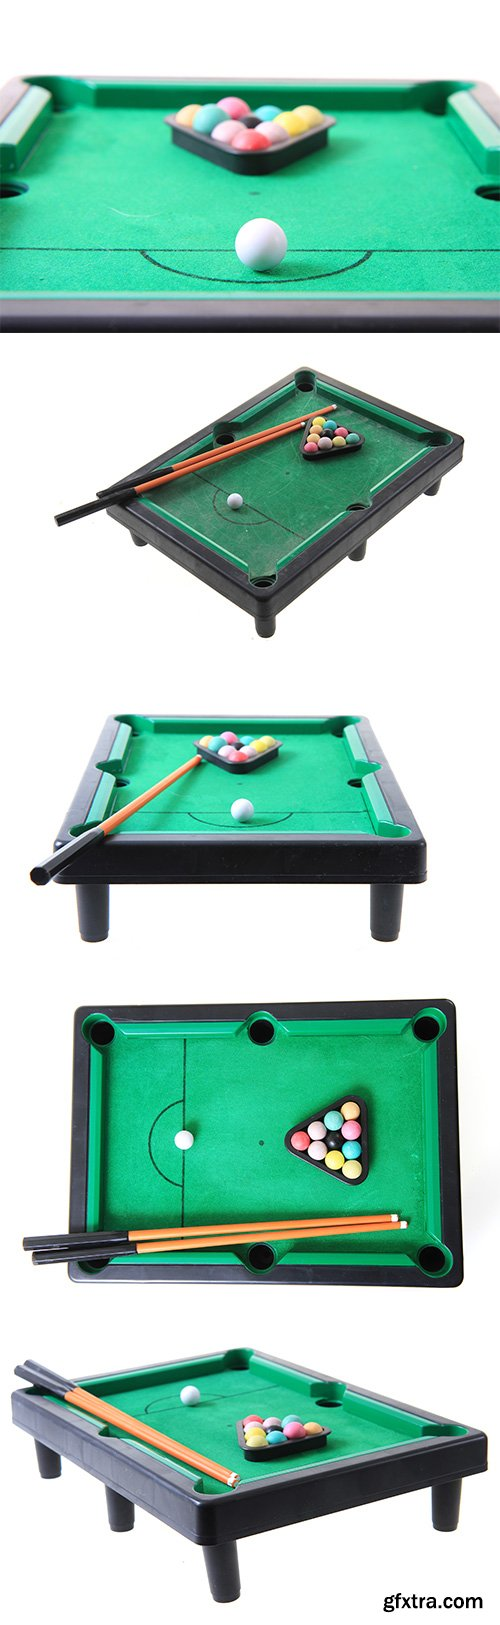 Billiard Toy Table Isolated - 6xJPGs